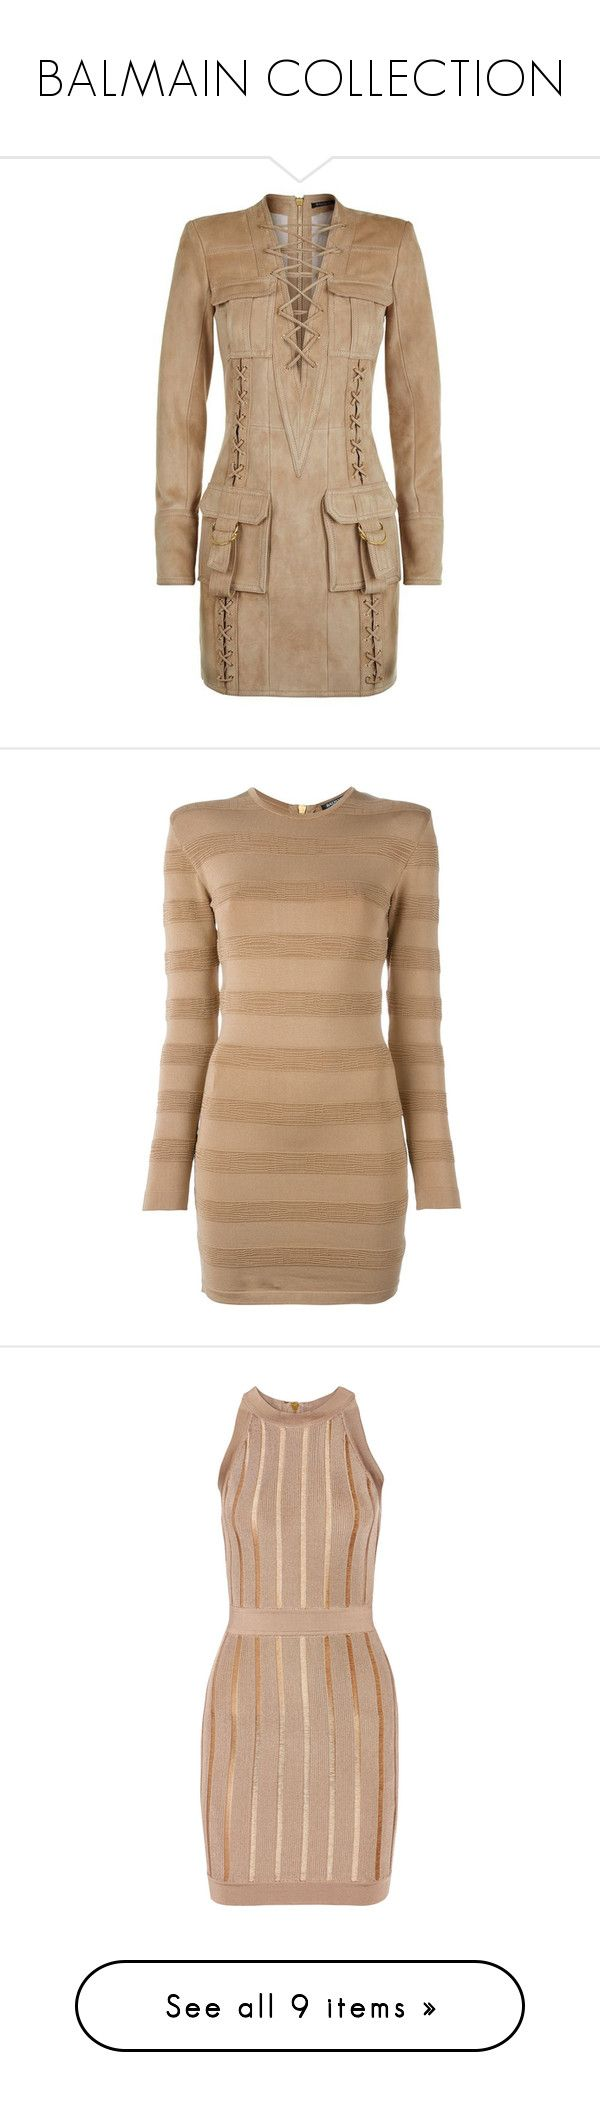 """""""BALMAIN COLLECTION"""" by purplerose27 ❤ liked on Polyvore featuring dresses, lace up front dress, suede dress, boho mini dress, mini dress, suede mini dress, beige, long sleeve dress, tight long sleeve dress and stripe dress"""